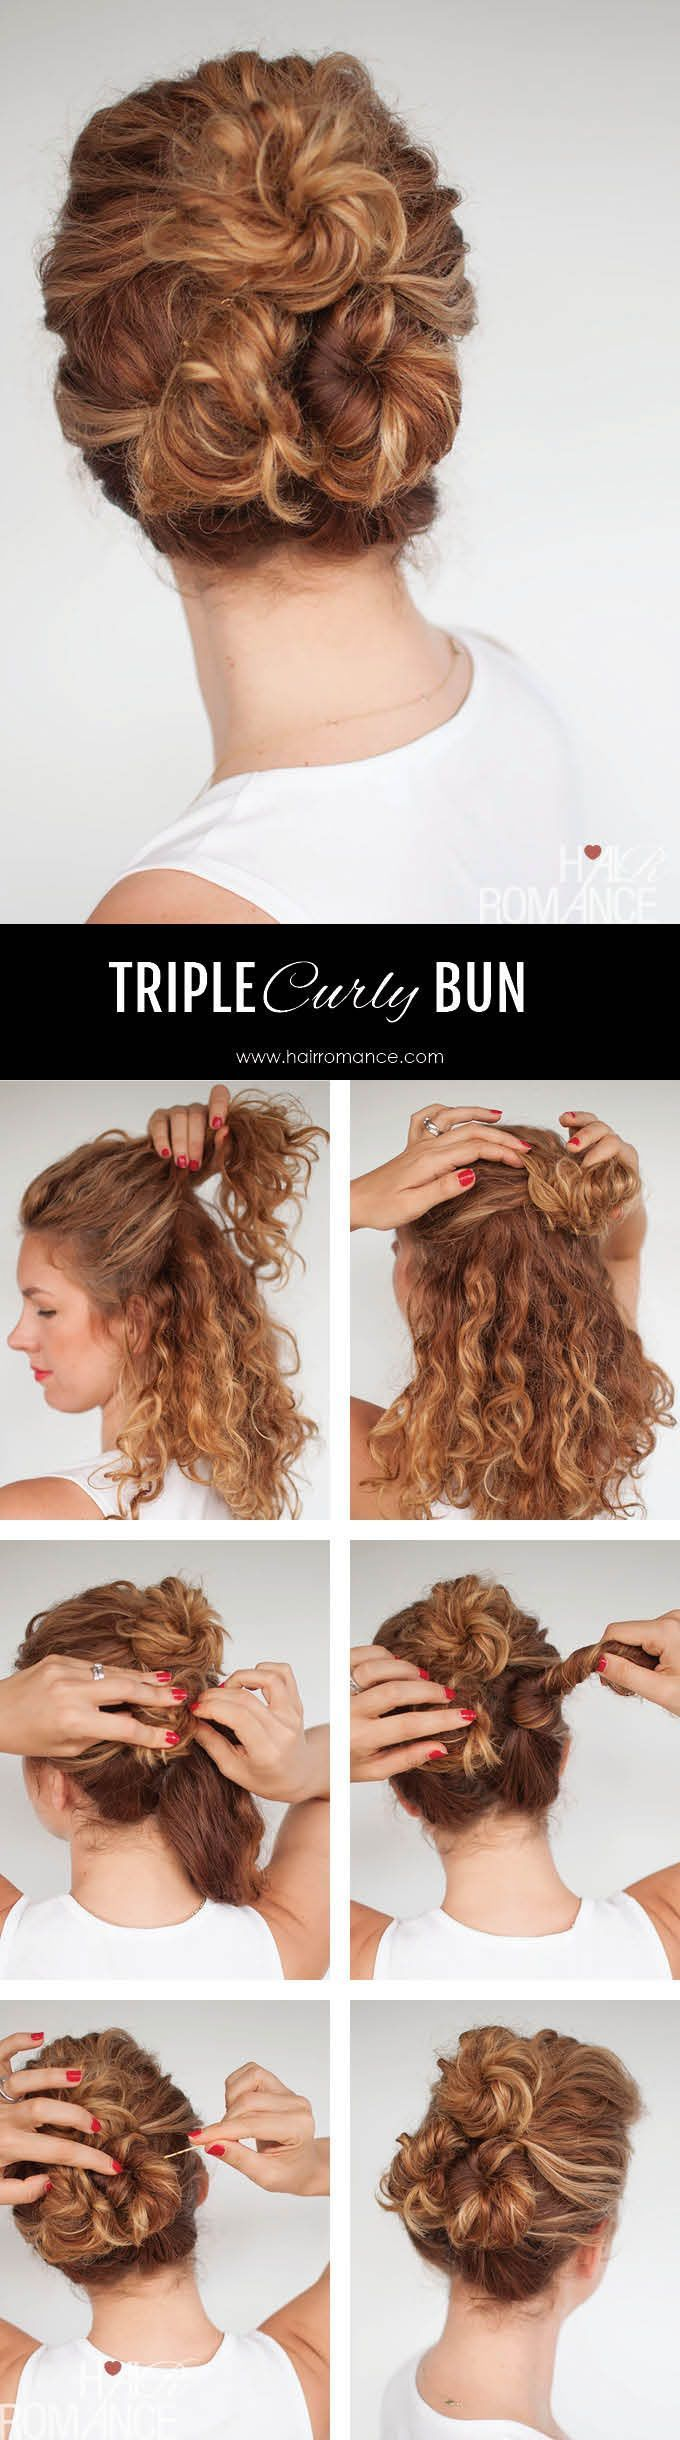 There is a common belief that women with curly hair are facing